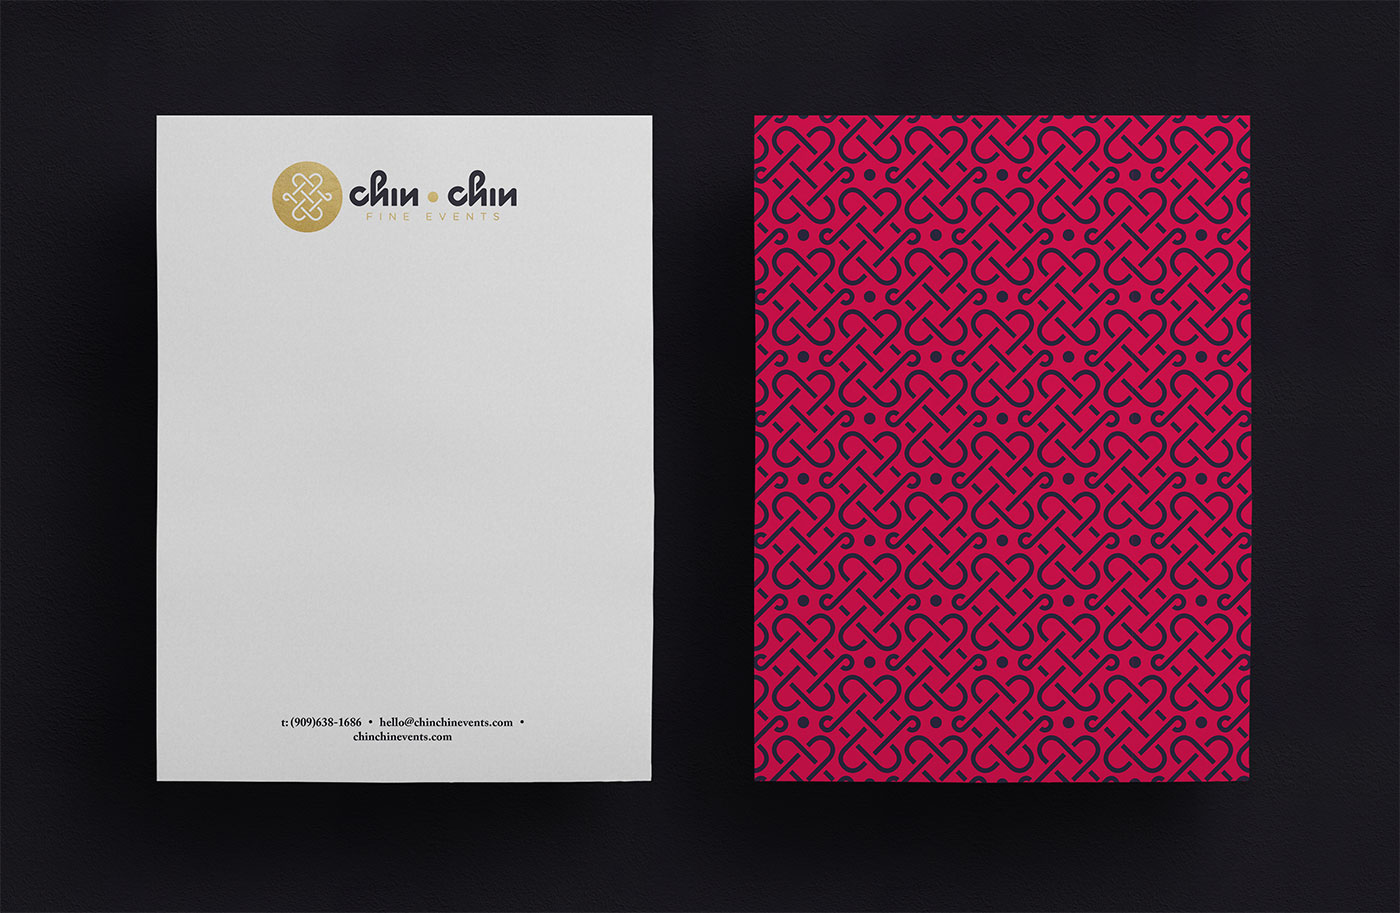 Outfit Branding & Design Chin Chin Fine Events Letterhead